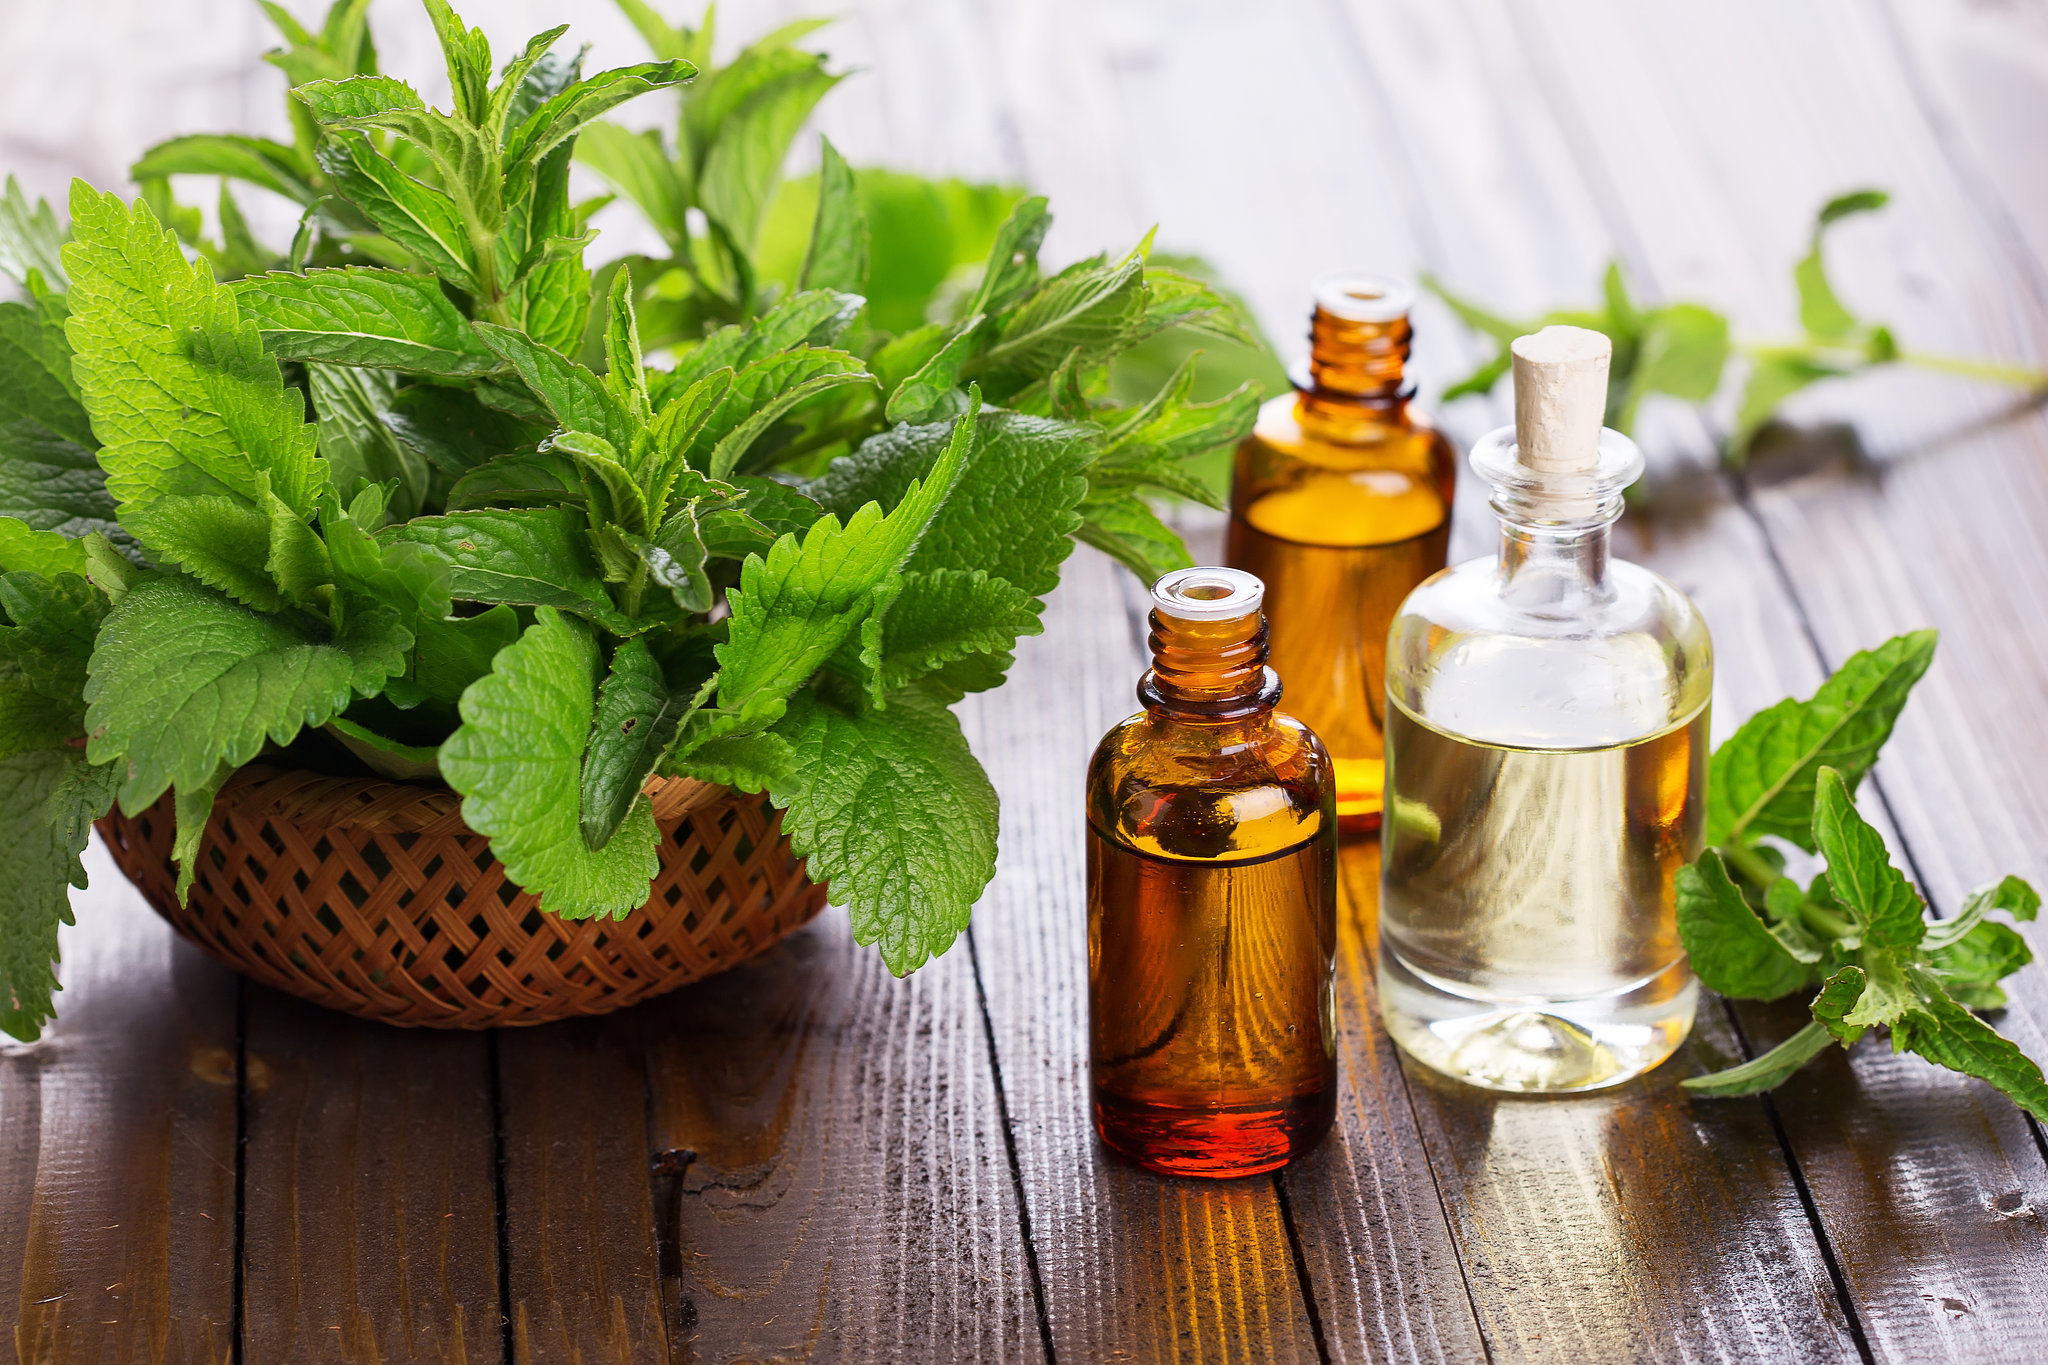 Peppermint or Eucalyptus Oil – cool your home in the summer